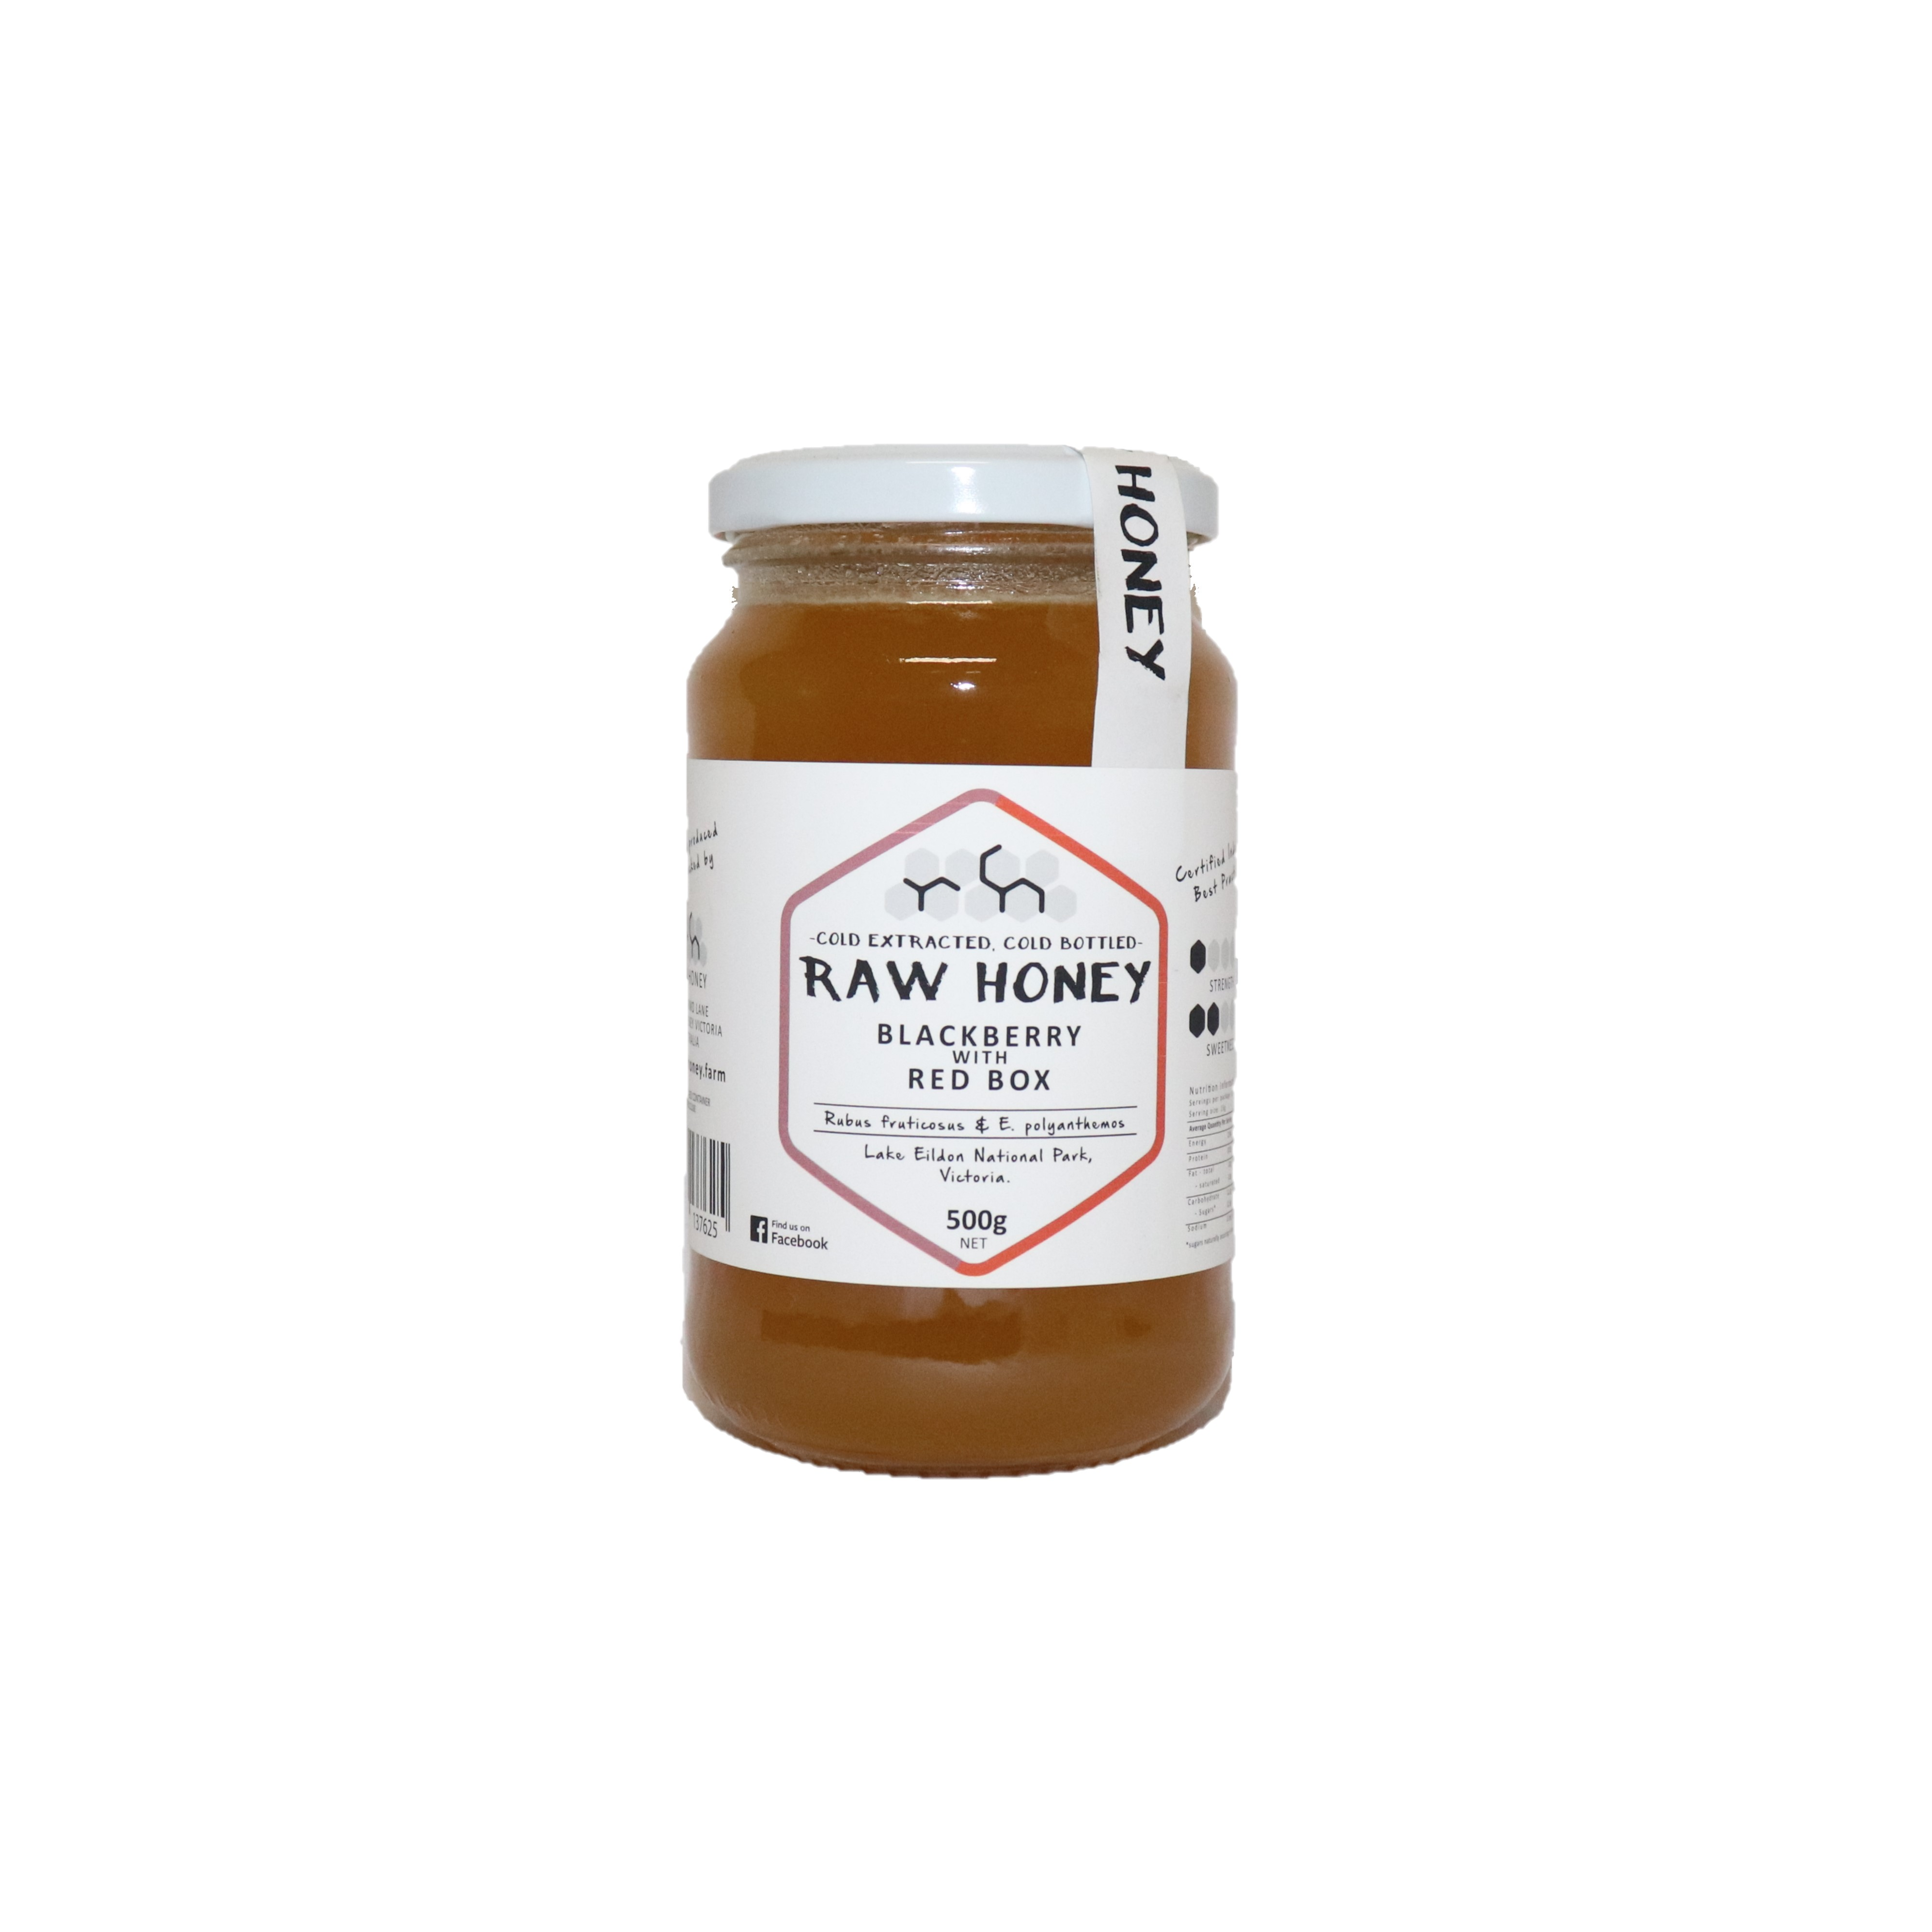 Raw Honey – Blackberry with Red Box 500g